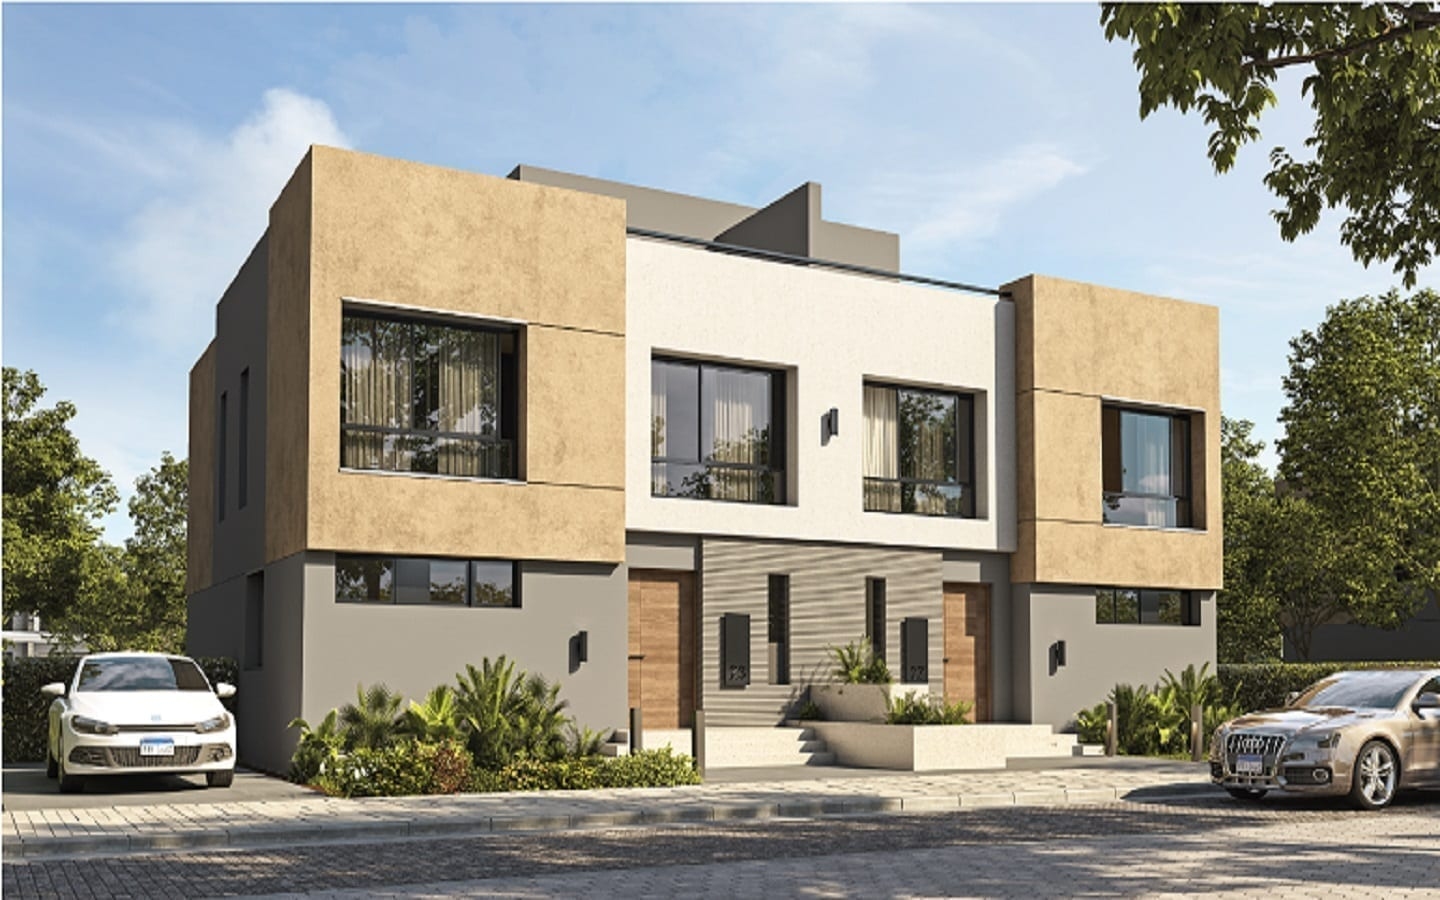 Swan lake Residences New Cairo Selina Genertaion Text Villas For Sale Compound Swan Lake Residences New Cairo - Master Plan and Prices - 8 Gates Real Estate Egypt (1)